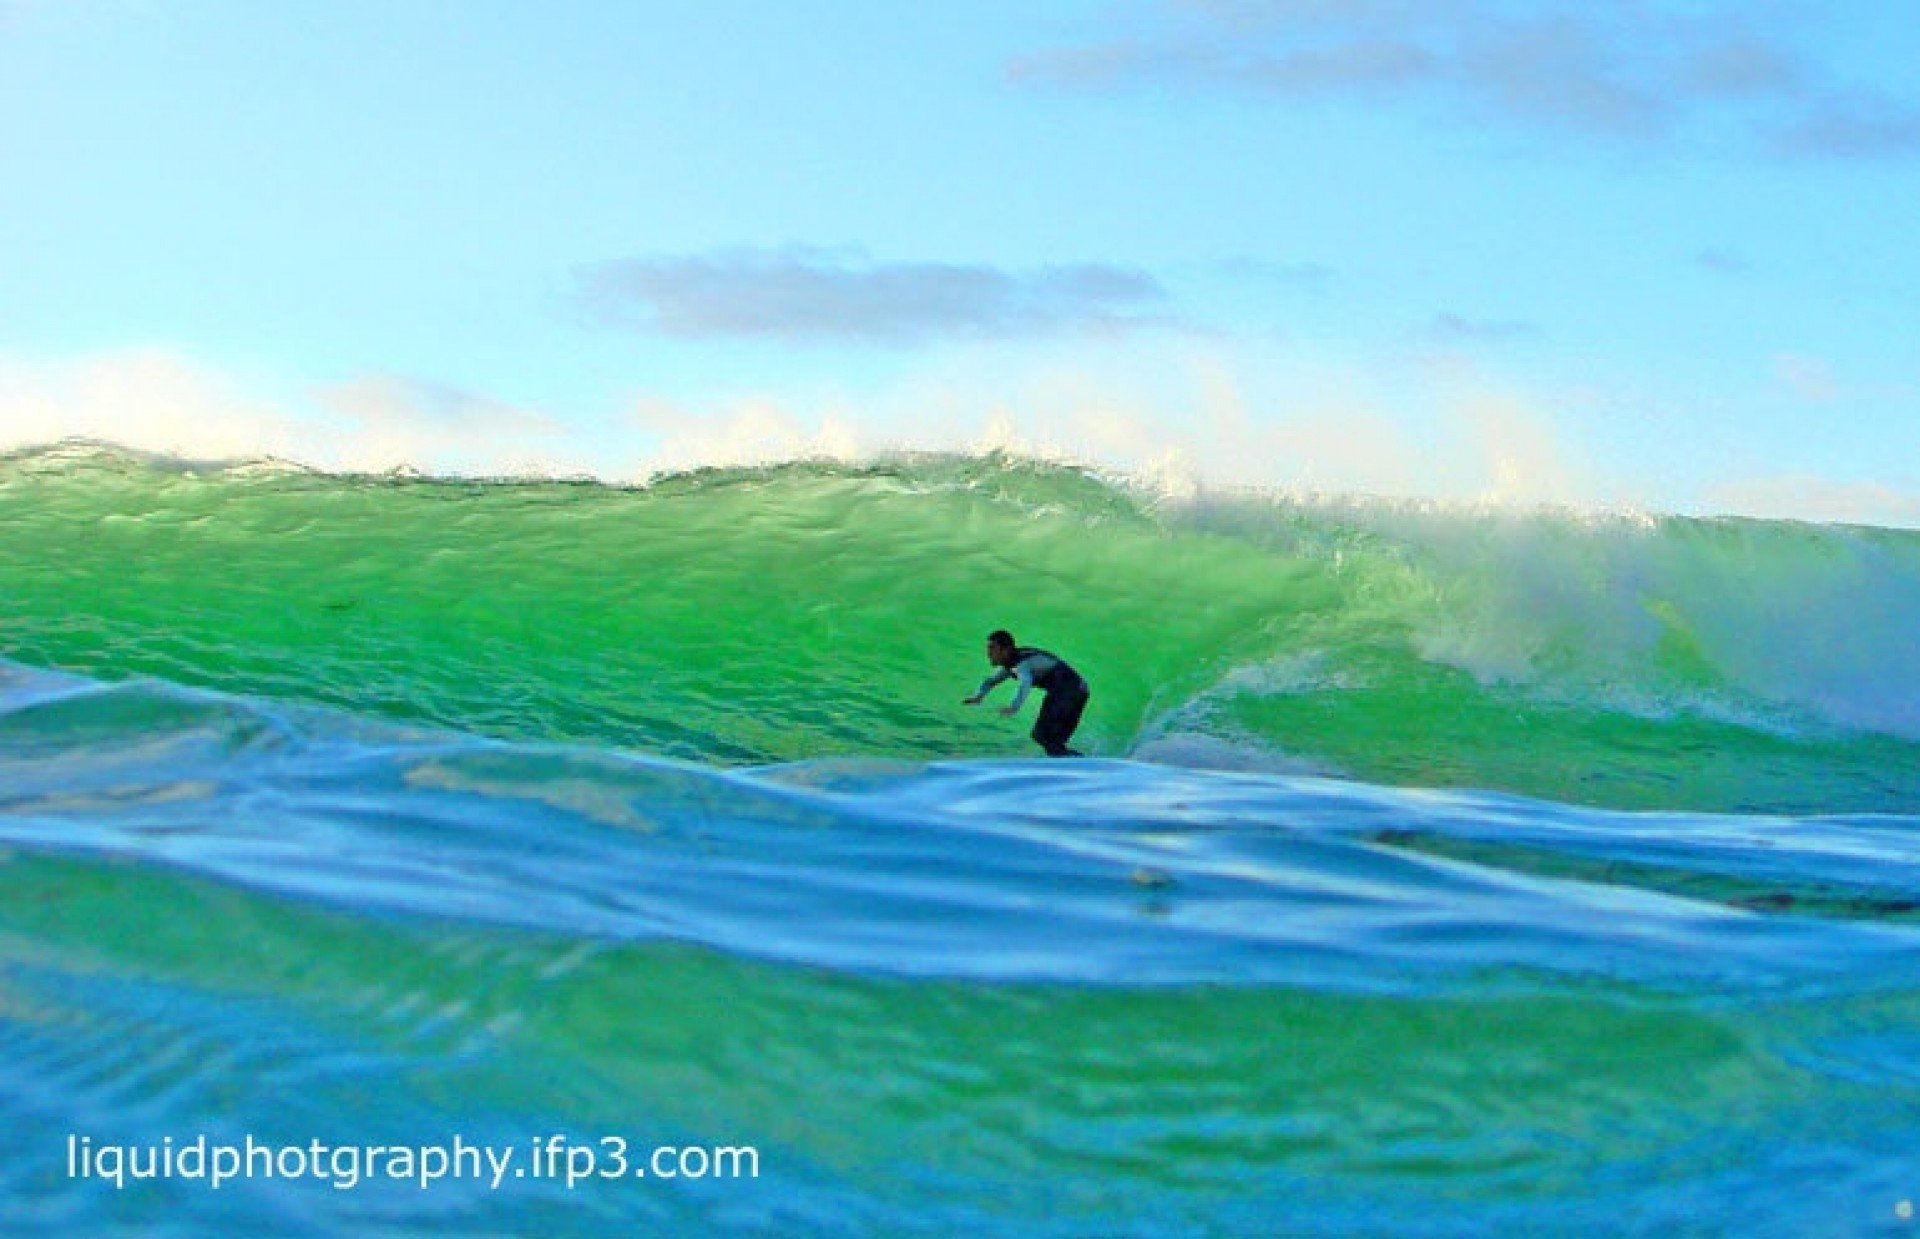 liquidphotography.ifp3.com's photo of Mission Beach (San Diego)